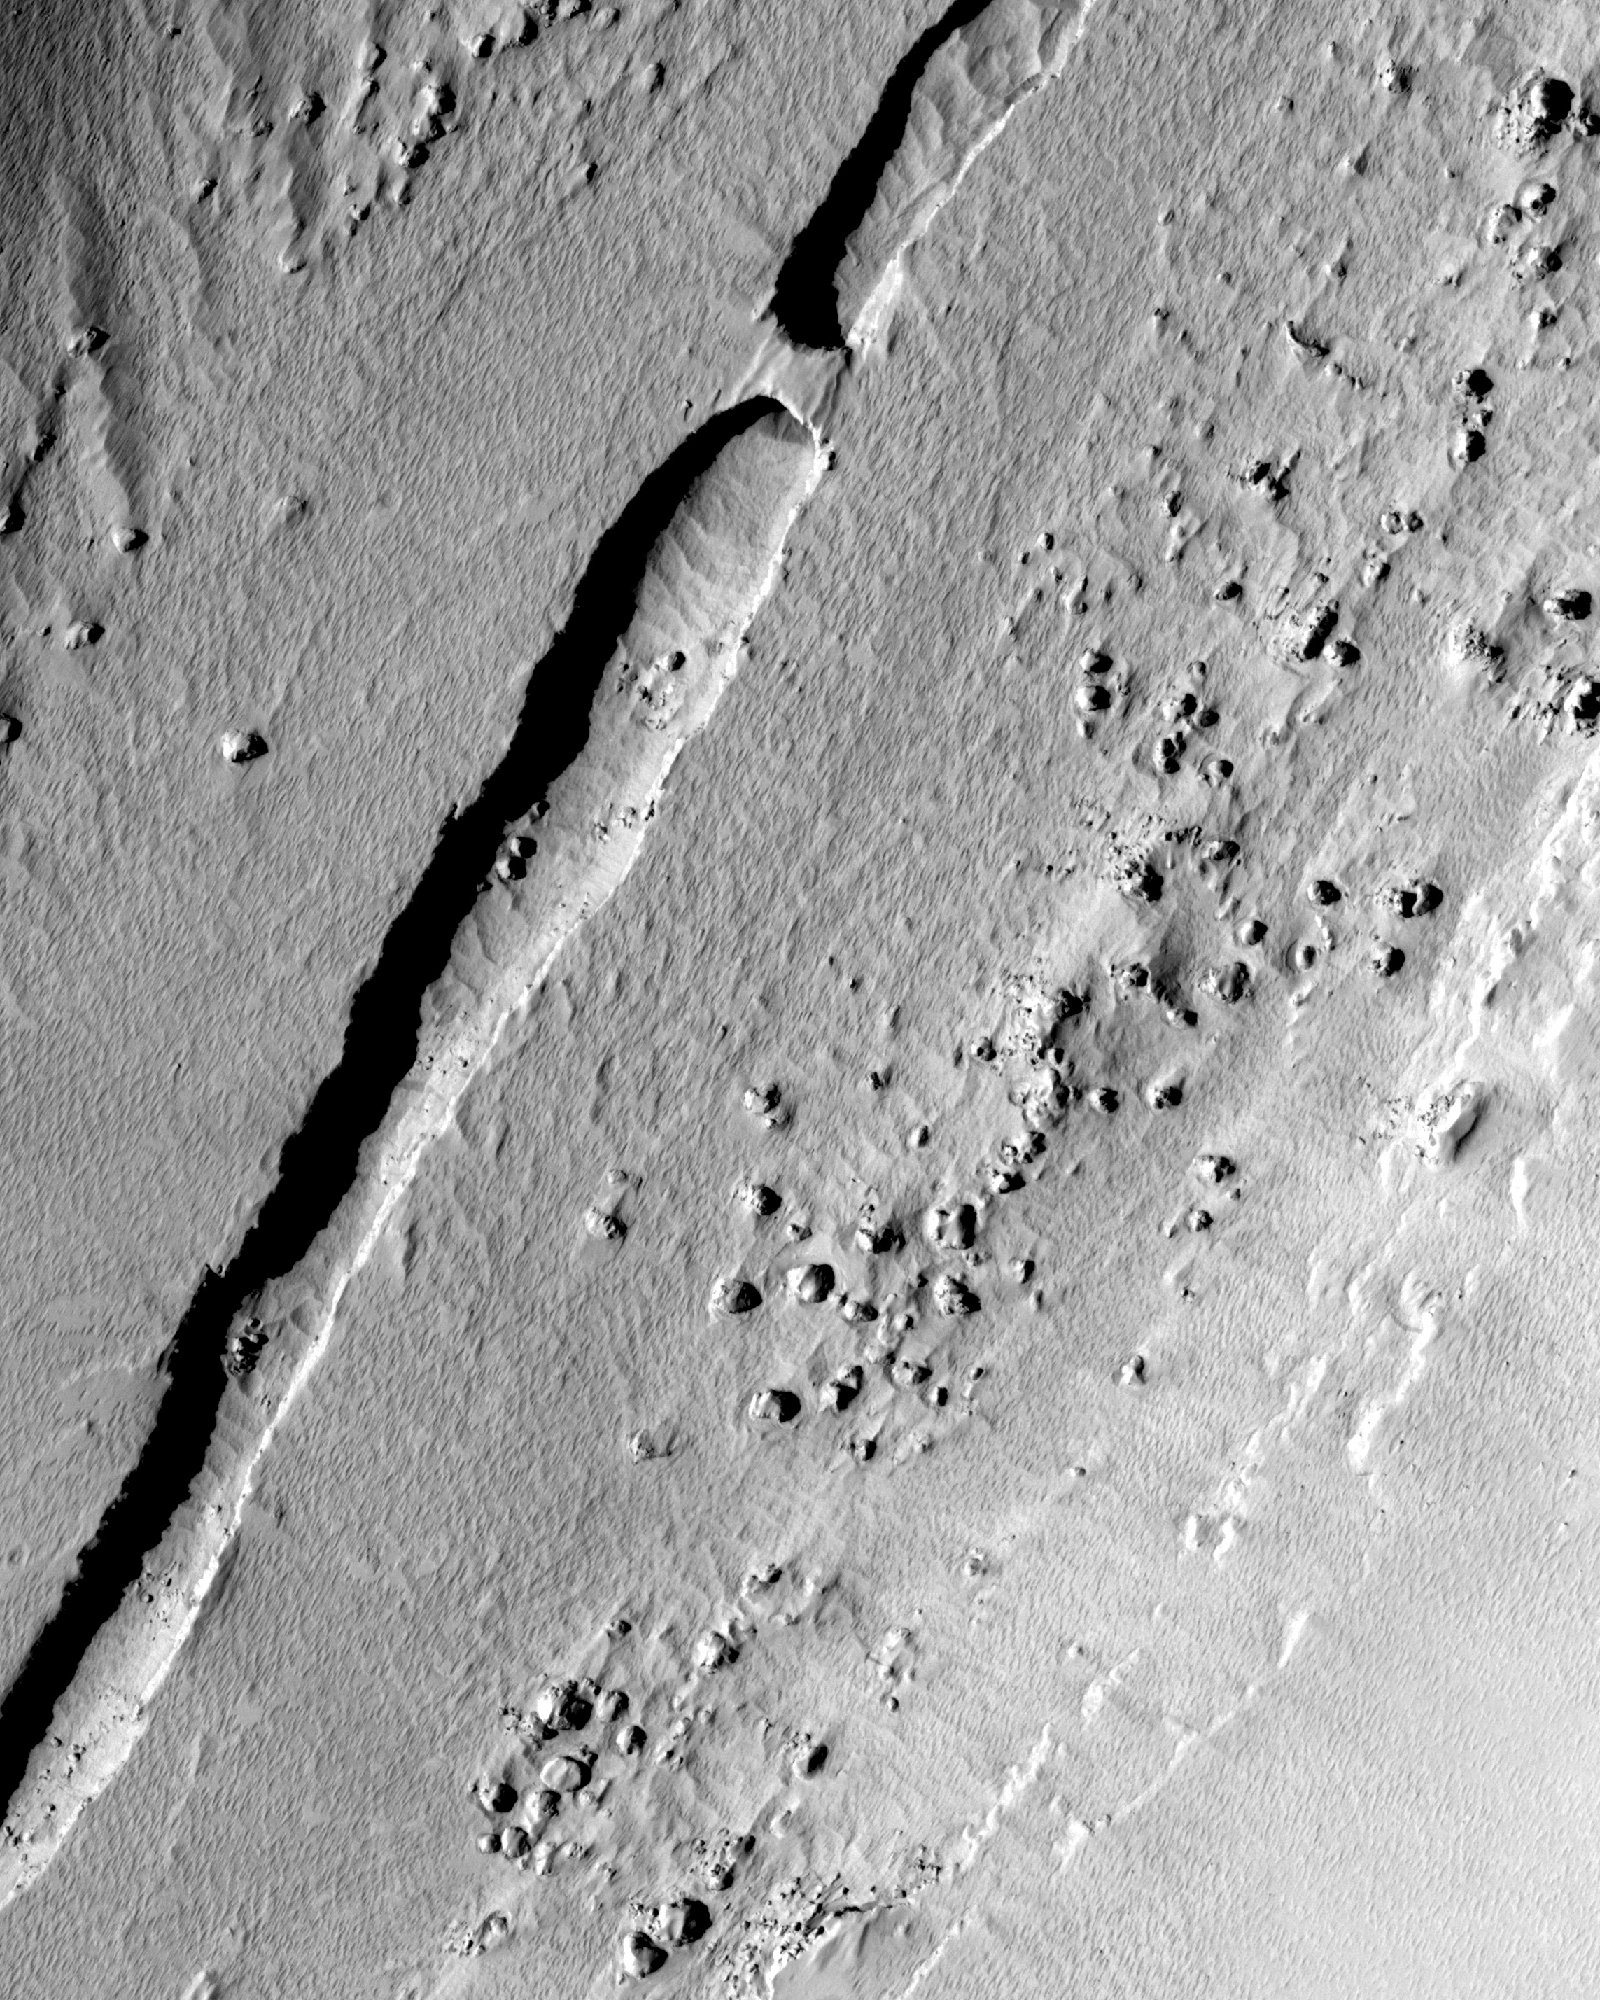 Collapsed Lava Tube on Mars